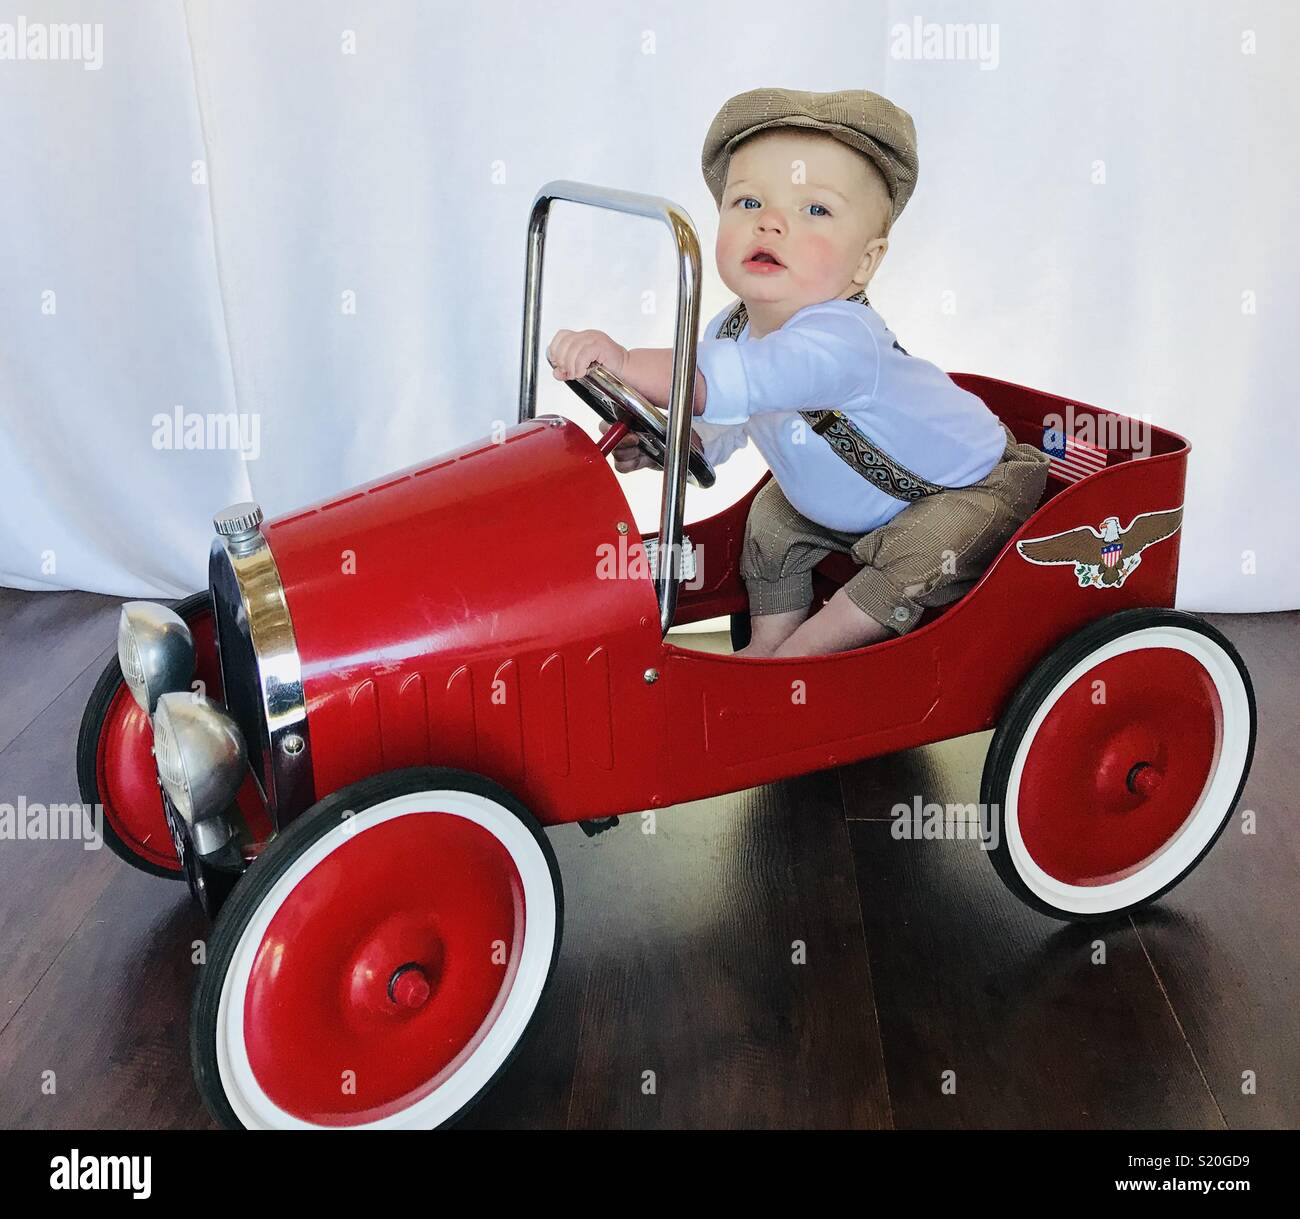 Cute baby in a news boy outfit playing with his antique looking peddle car. This cute baby wears brown tan knickers, suspenders and a news boy hat while he sits in his red car pretending to drive. - Stock Image